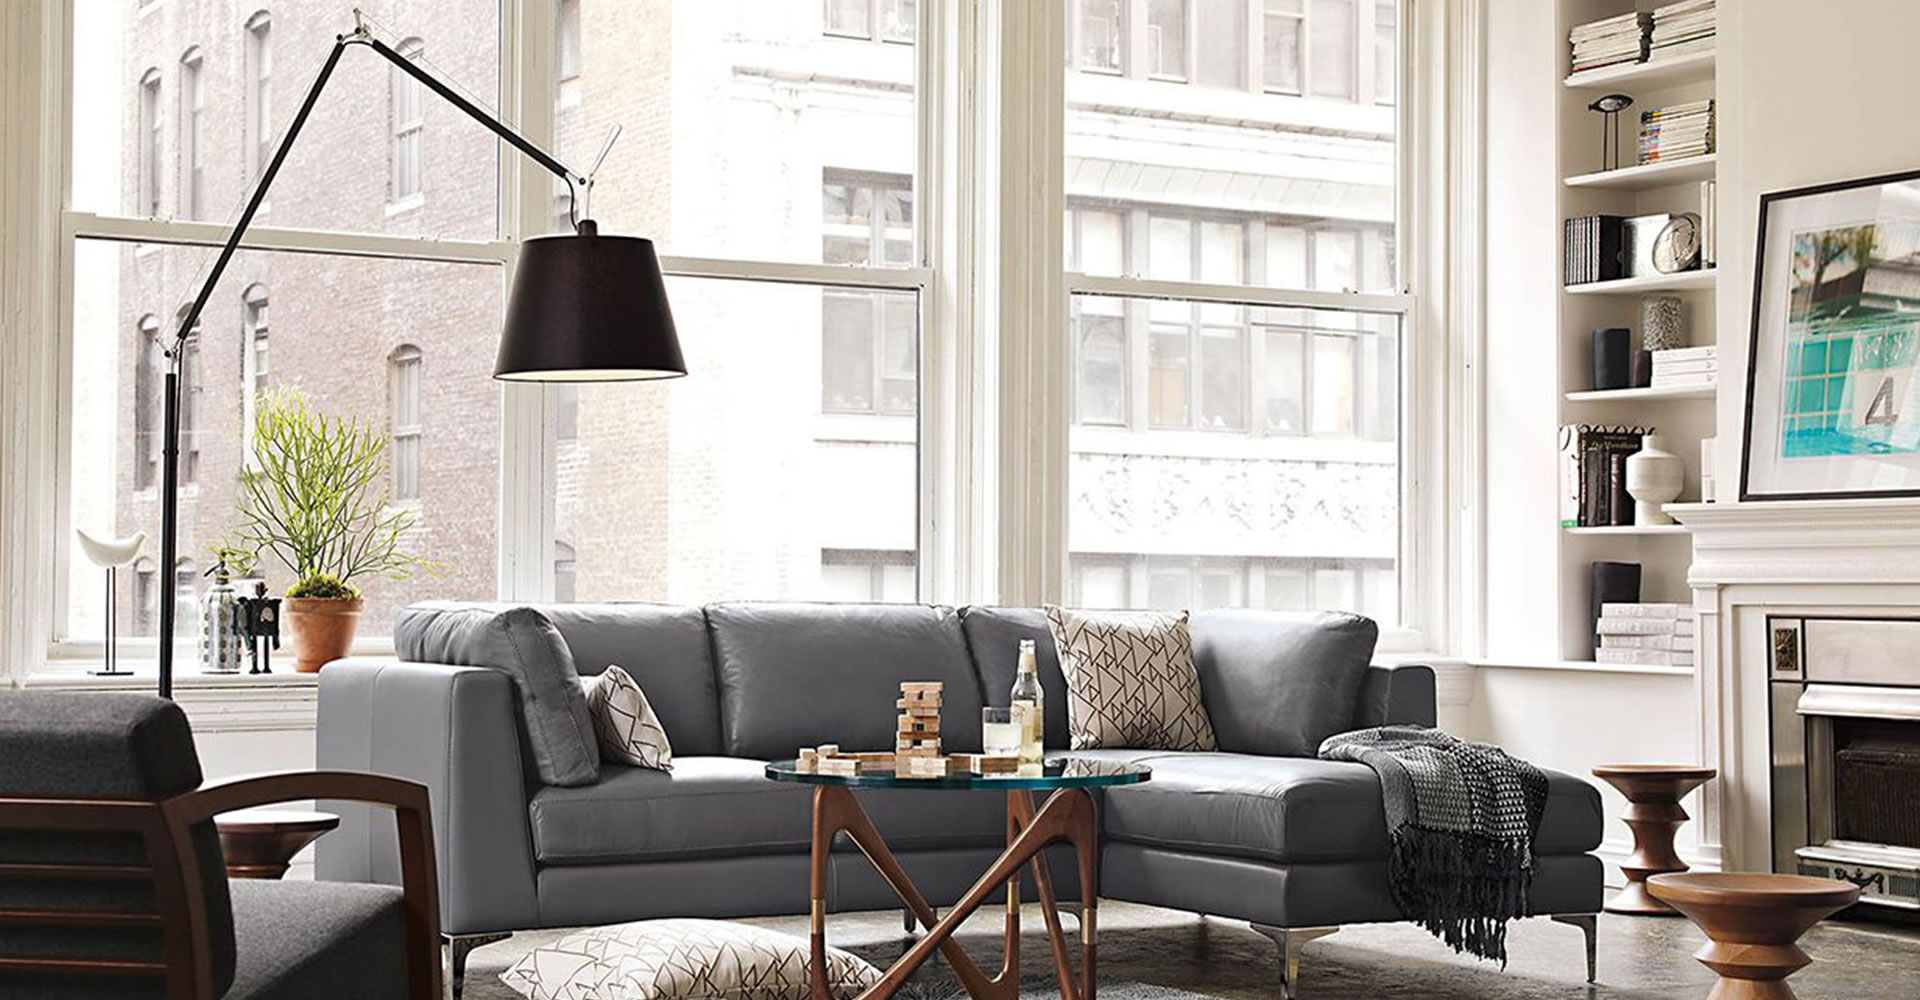 Stylish Lighting for Specific Zones: Floor Lamps Overview. Dark grey couch with cushions and black lampshade for casual apartment with large windows